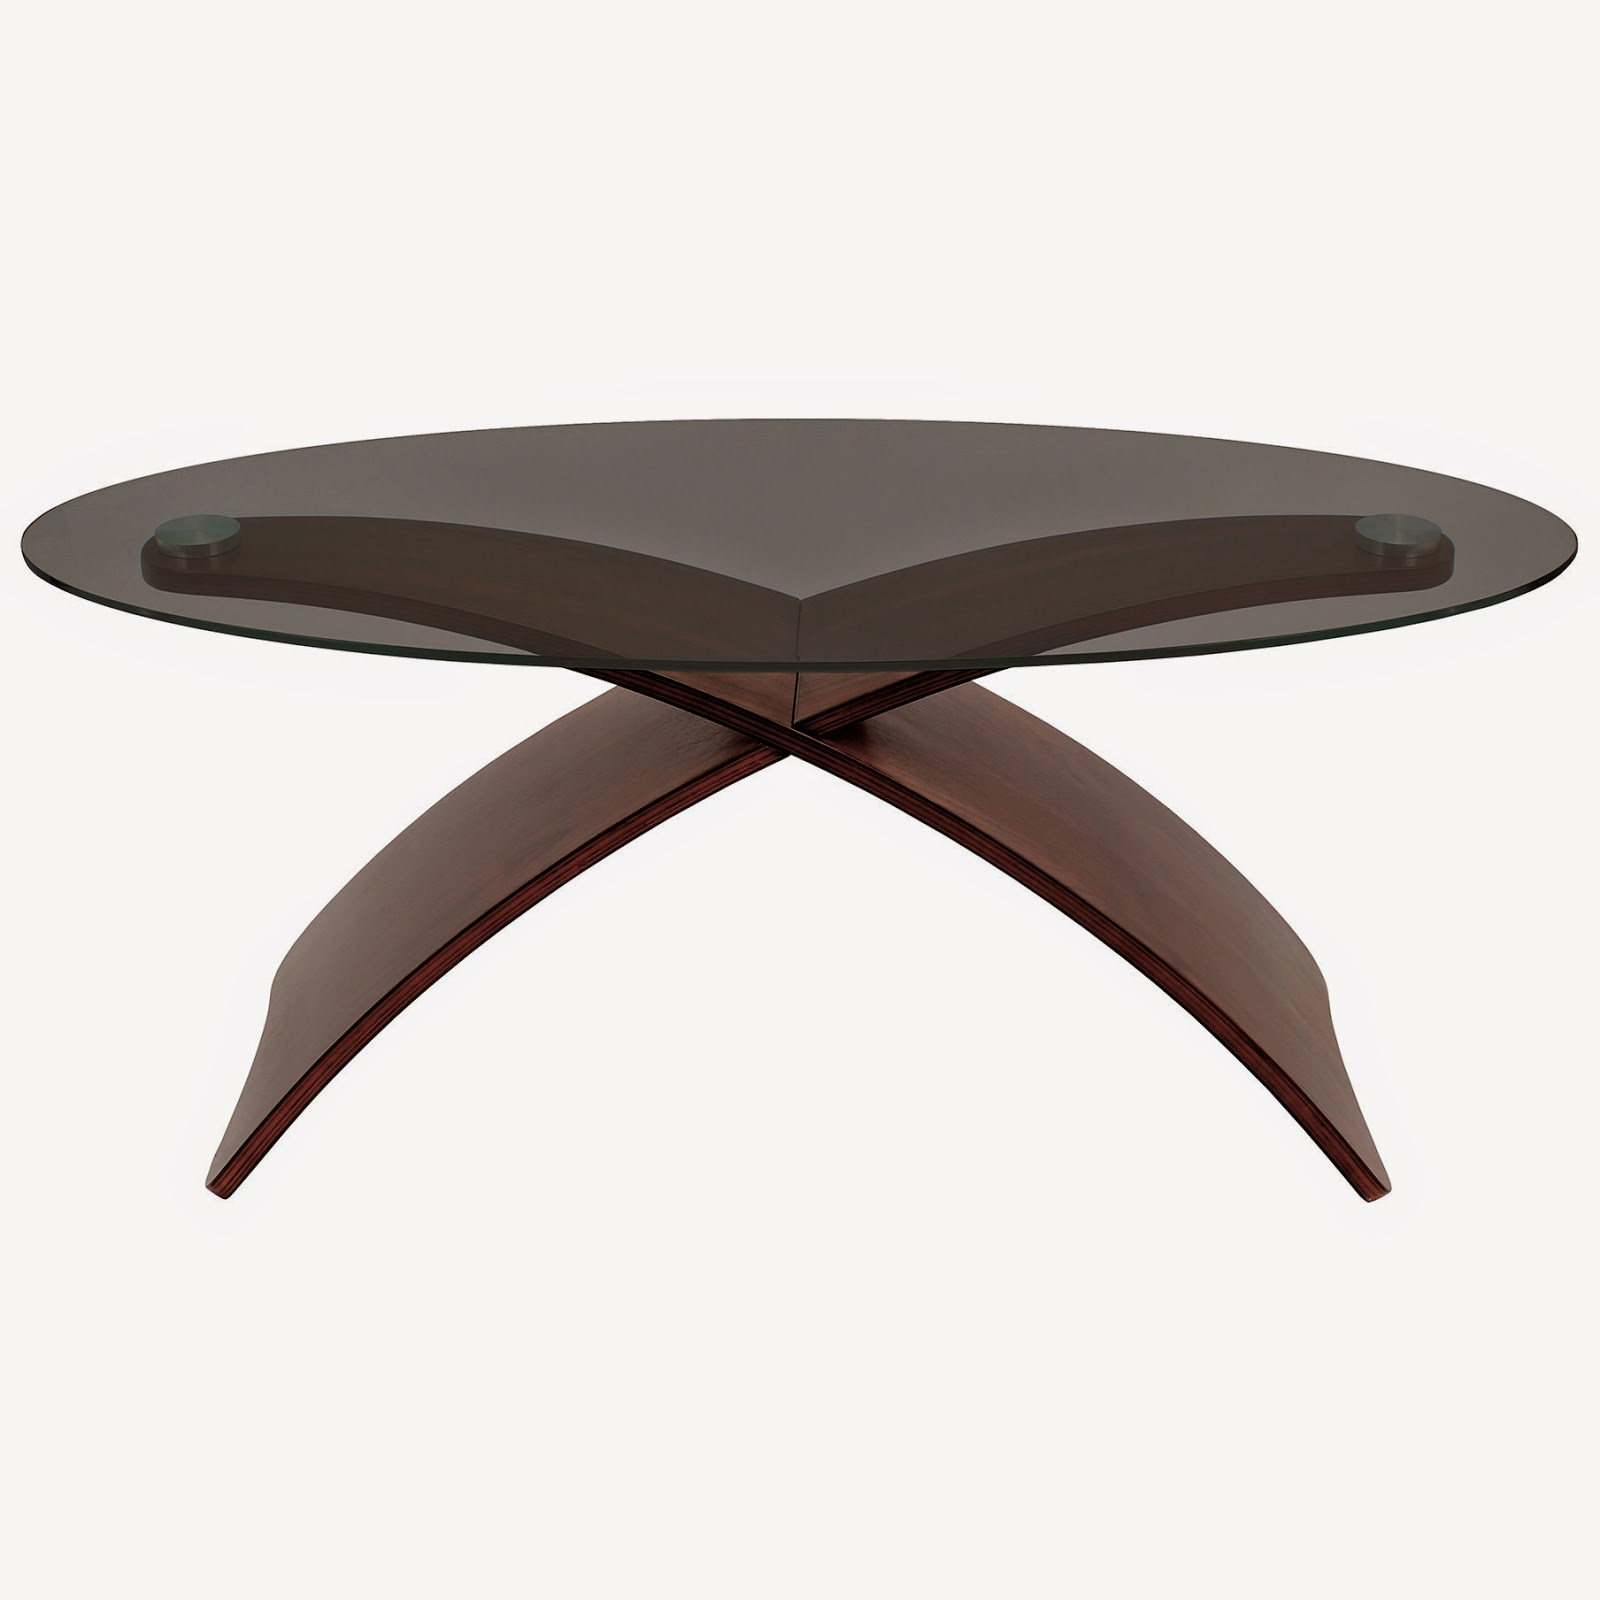 25 elegant oval coffee table designs made of glass and wood Glass contemporary coffee table